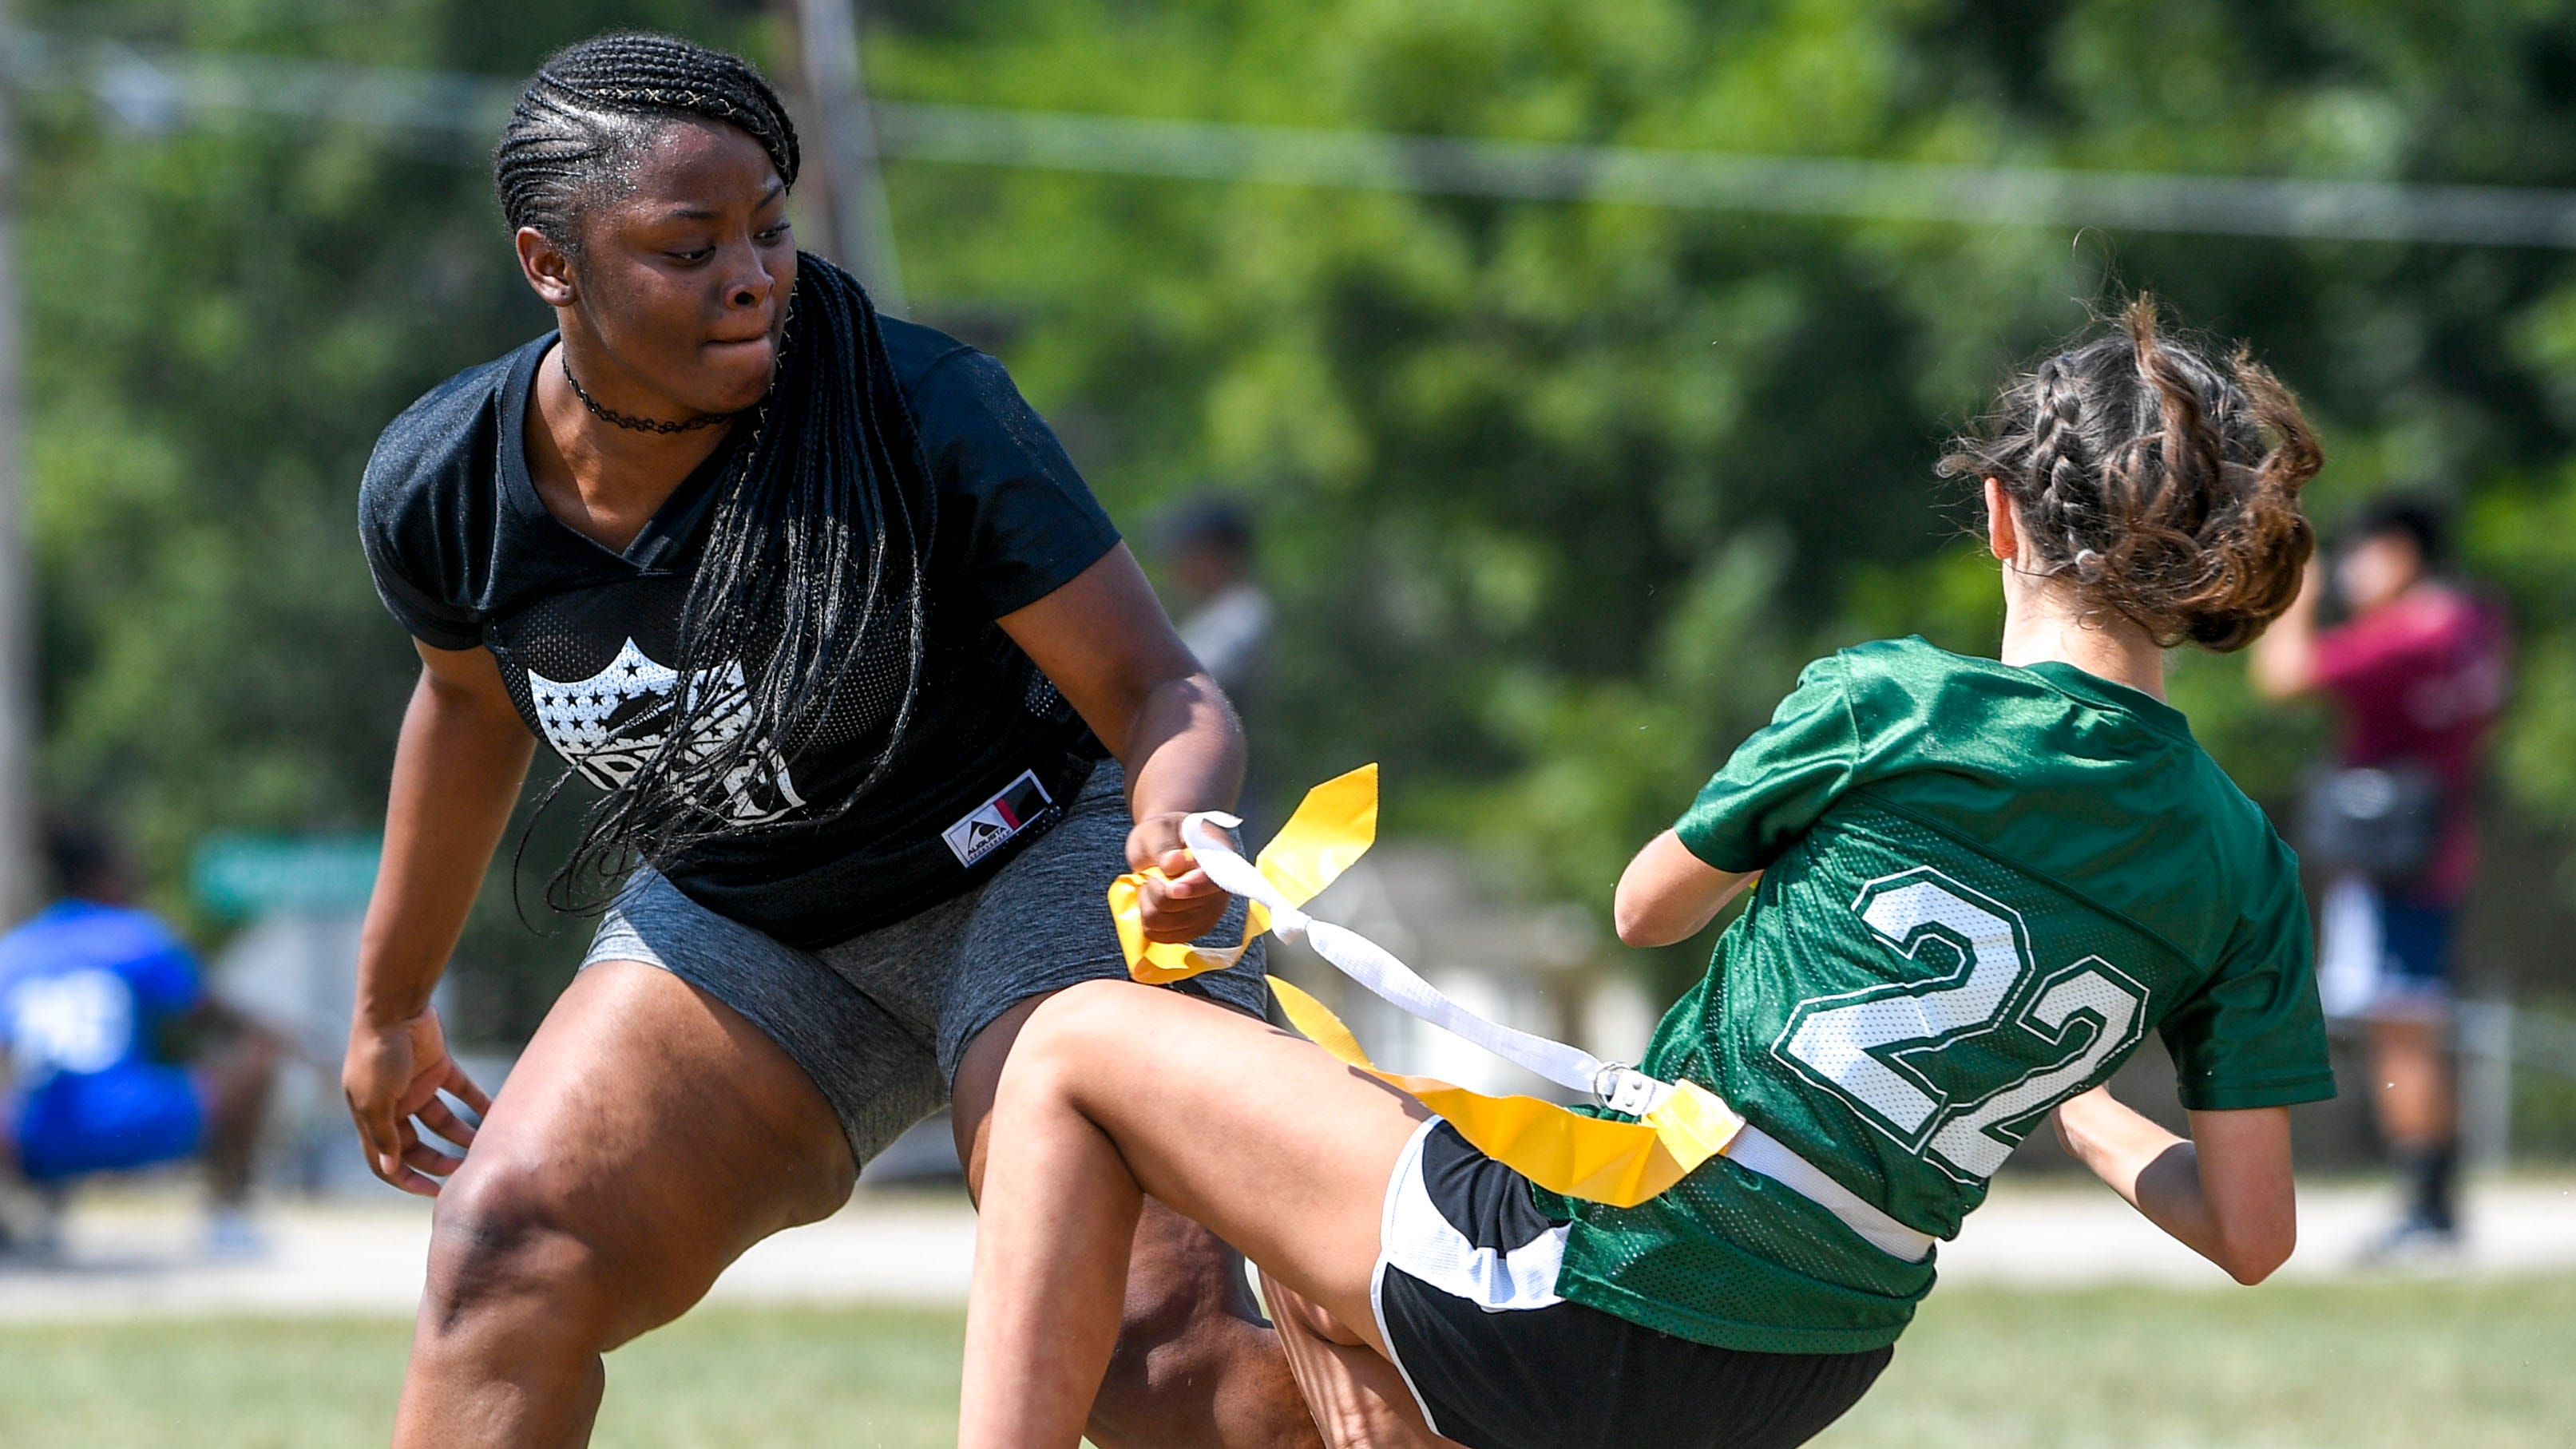 A senior defender pulls the freshman quarterback down to the ground during the 2017 Powder Puff game at Madison Academic High School in Jackson, Tenn., on Friday, Sept. 21, 2018.